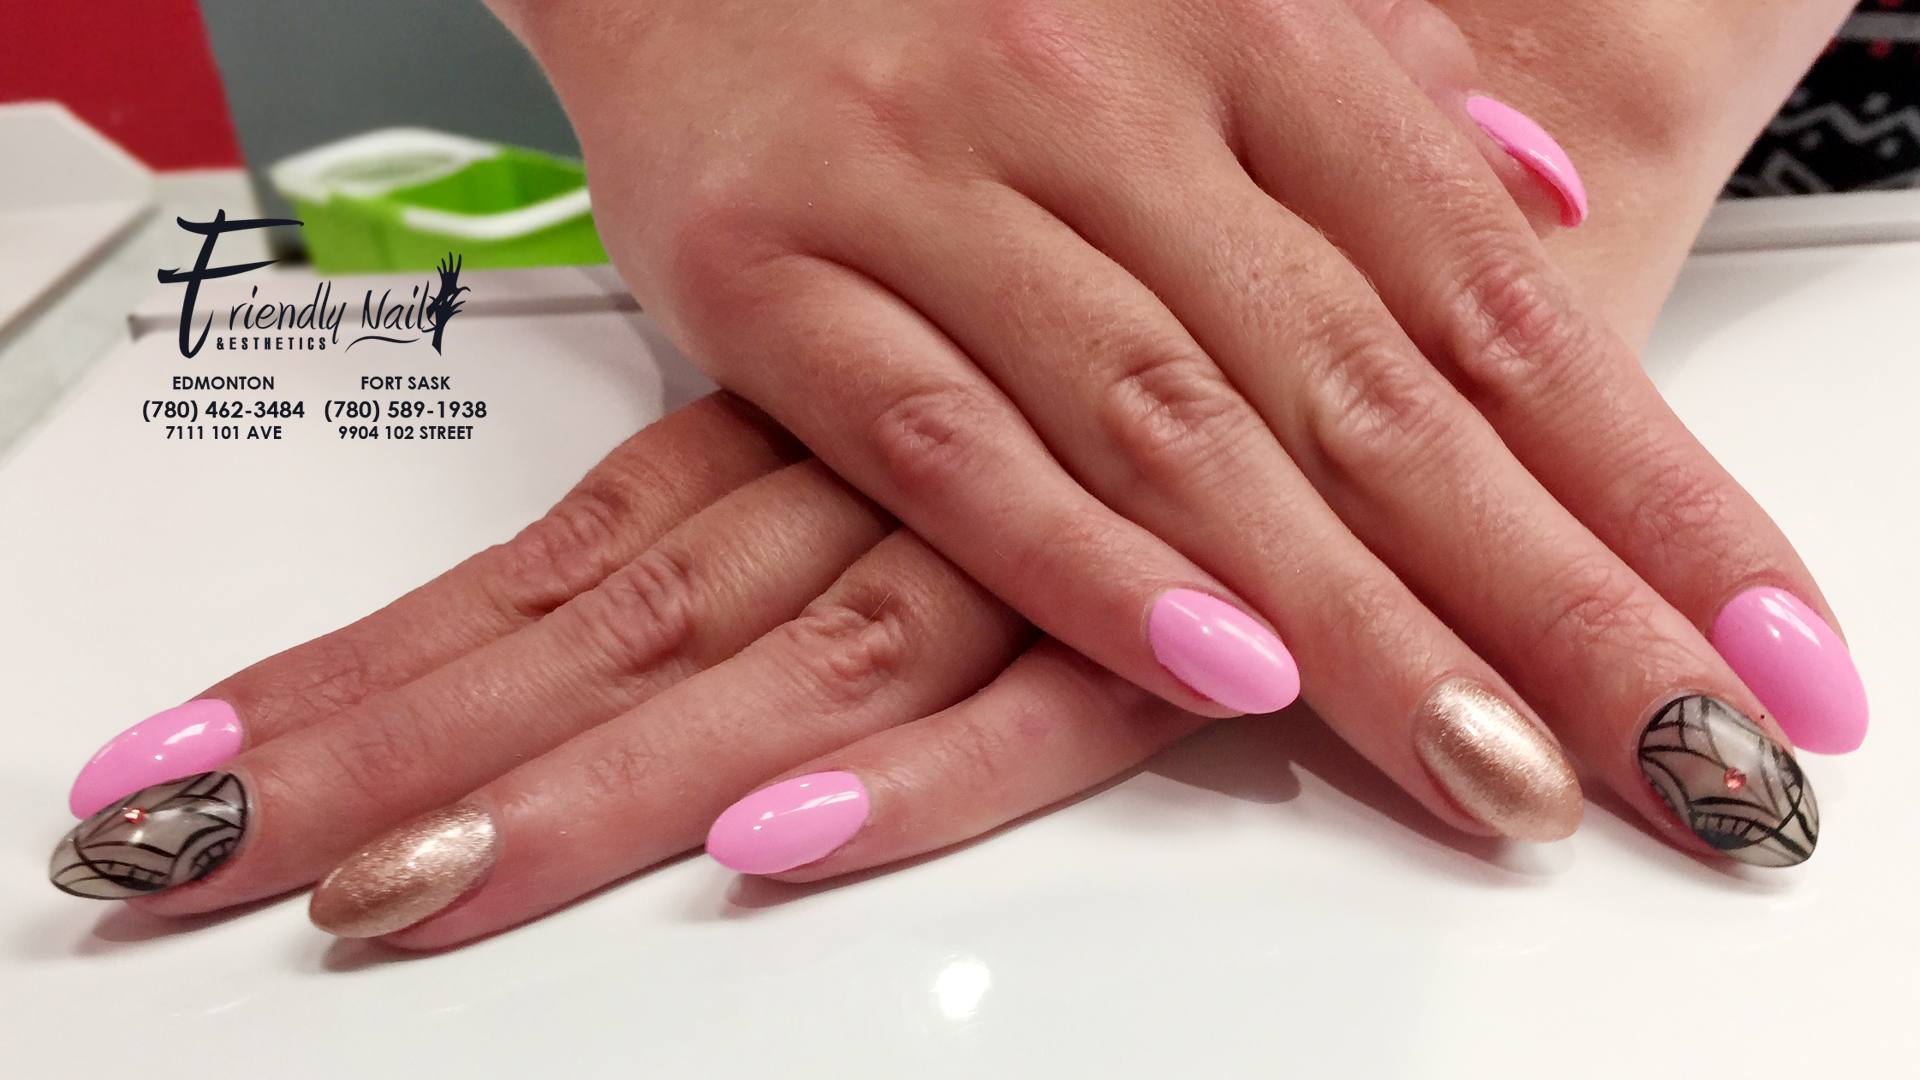 Friendly Nails & Esthetics – Most Loved Nail Salon In Town!